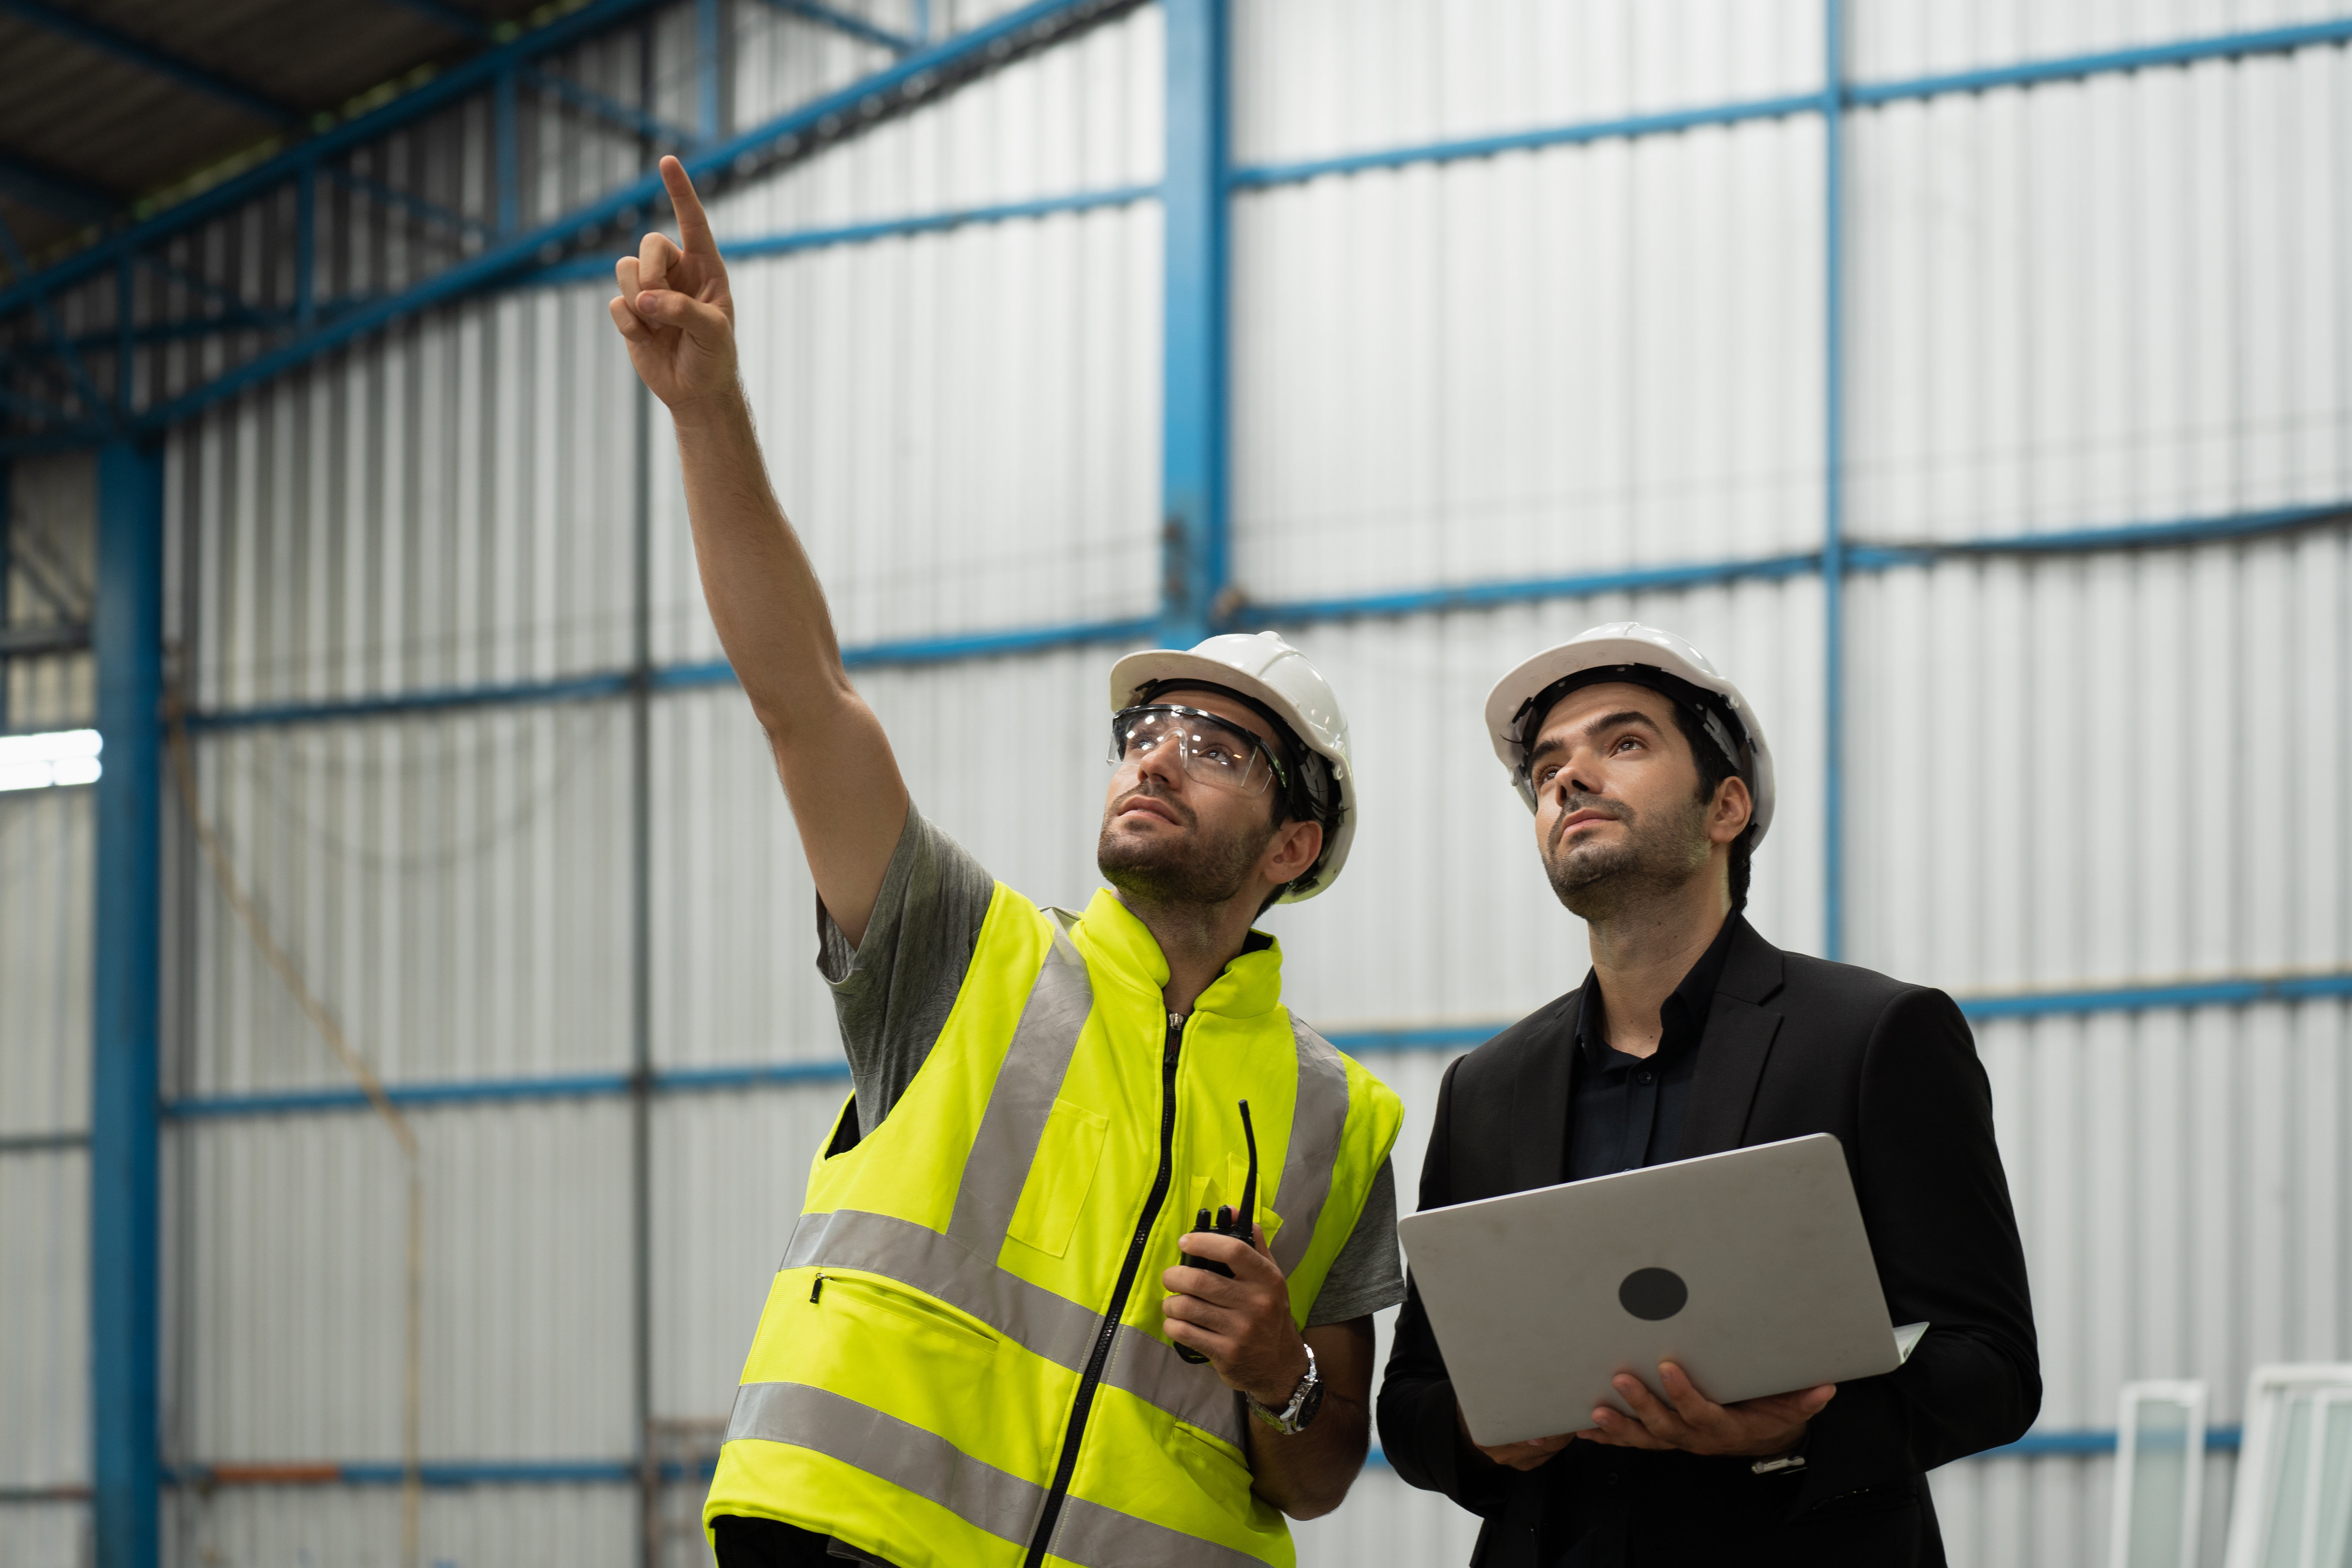 Two people looking up and pointing